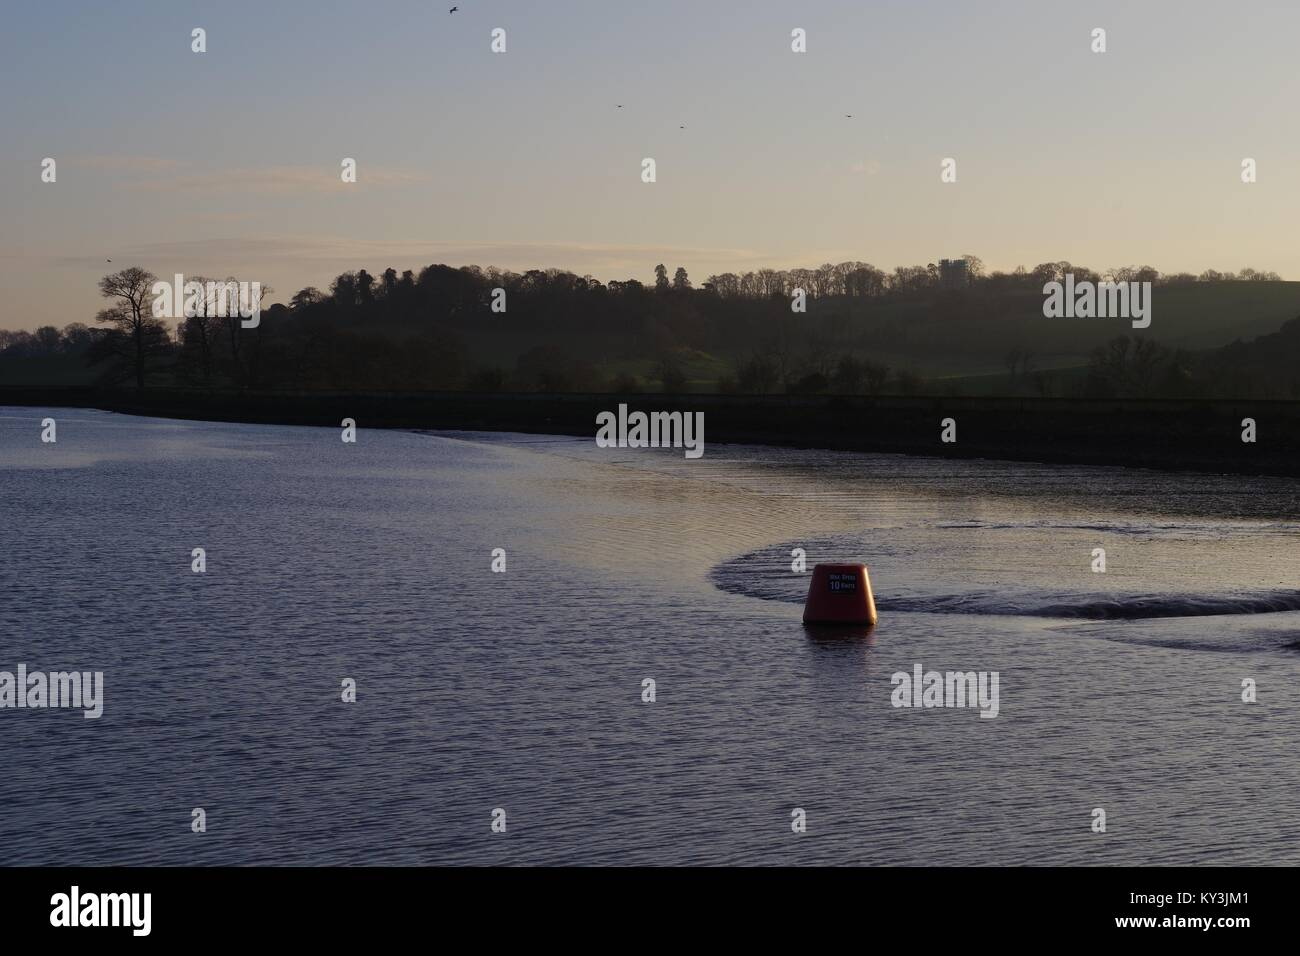 Wooded Countryside of Powderham Estate and the River Exe Estuary at Dusk. South Devon, UK. Stock Photo